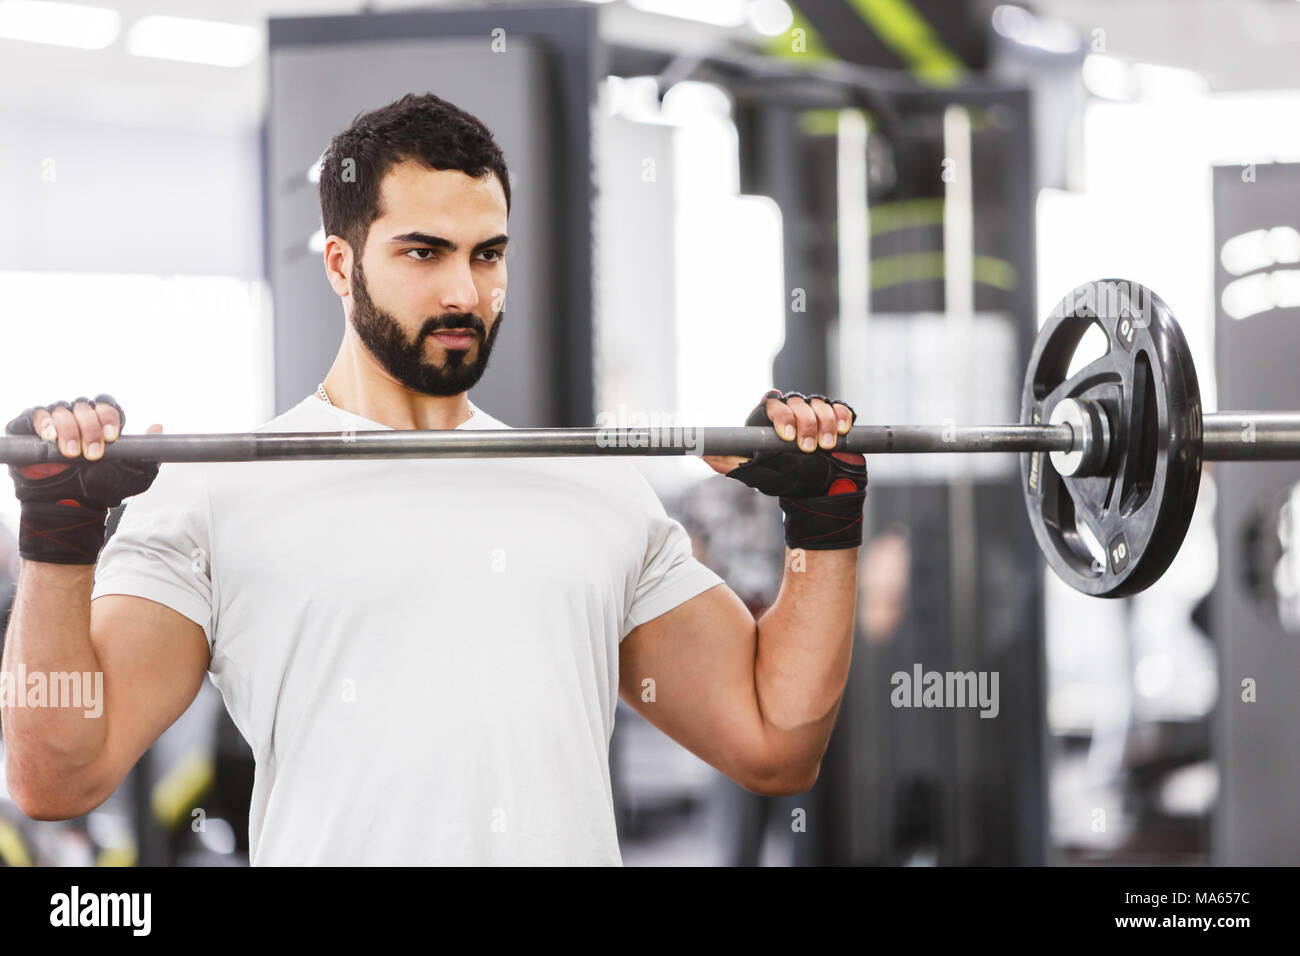 Man with Barbell - Stock Image